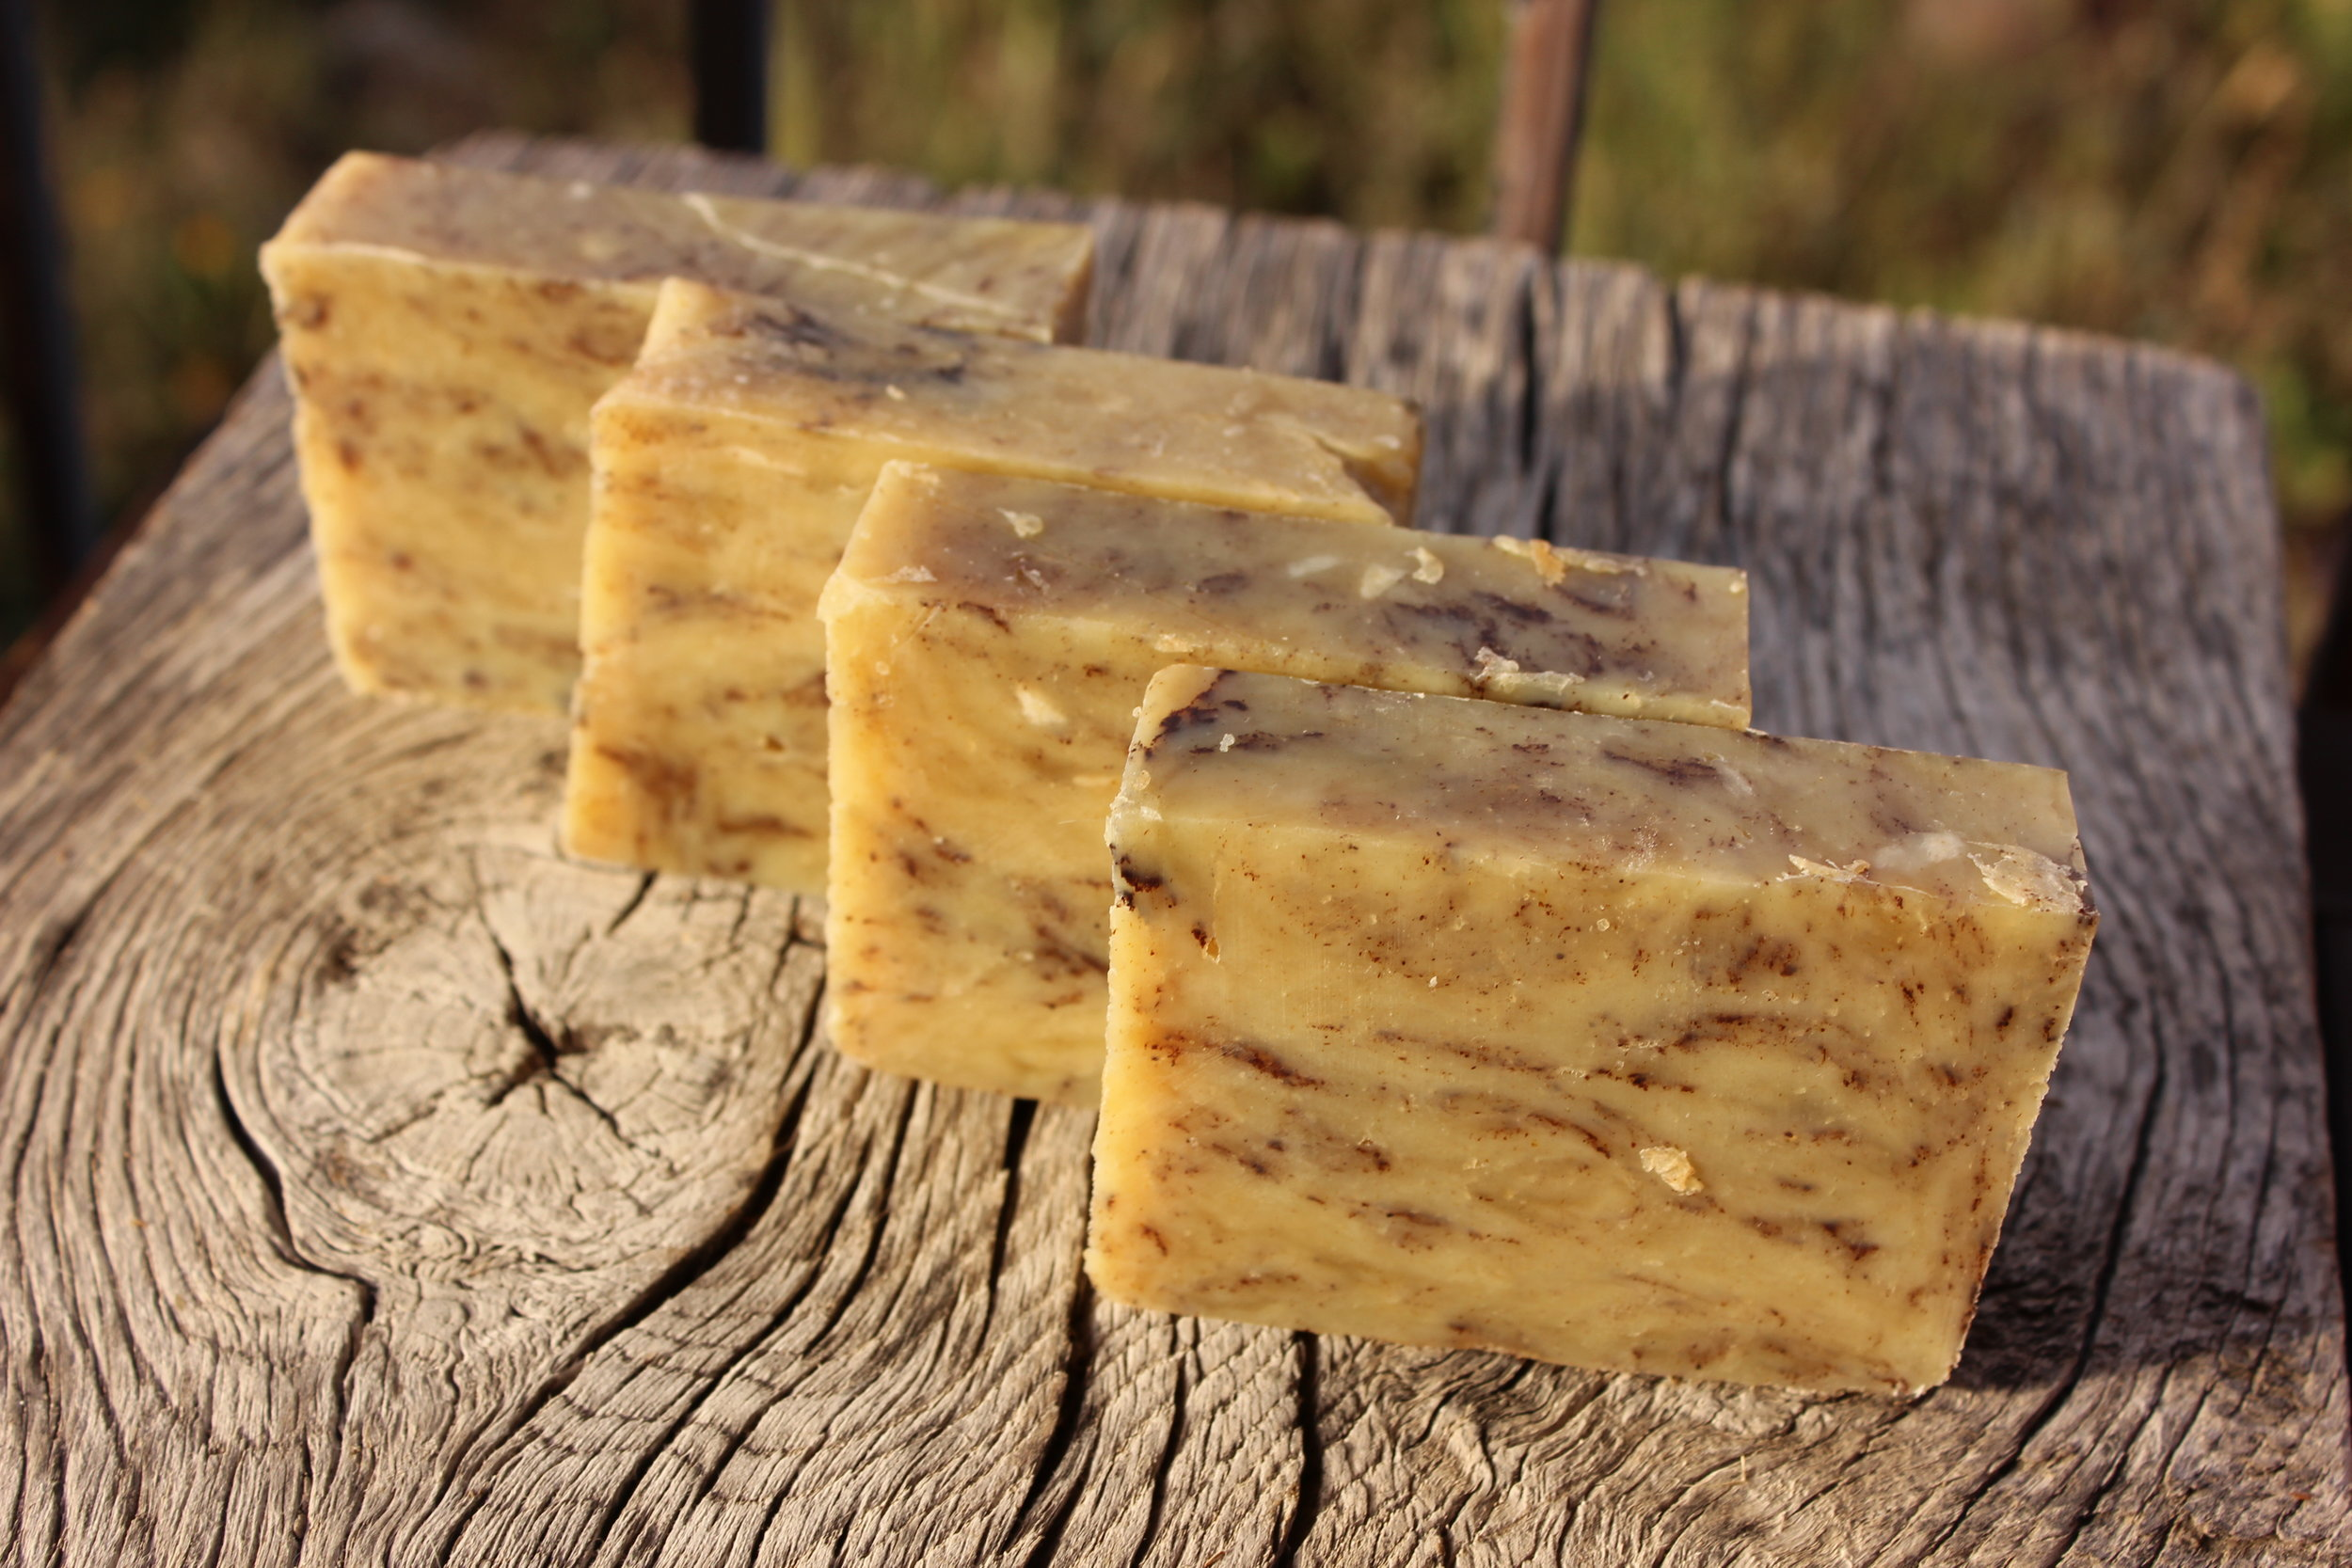 Here are a few bars of this woodsy-spicy soap!